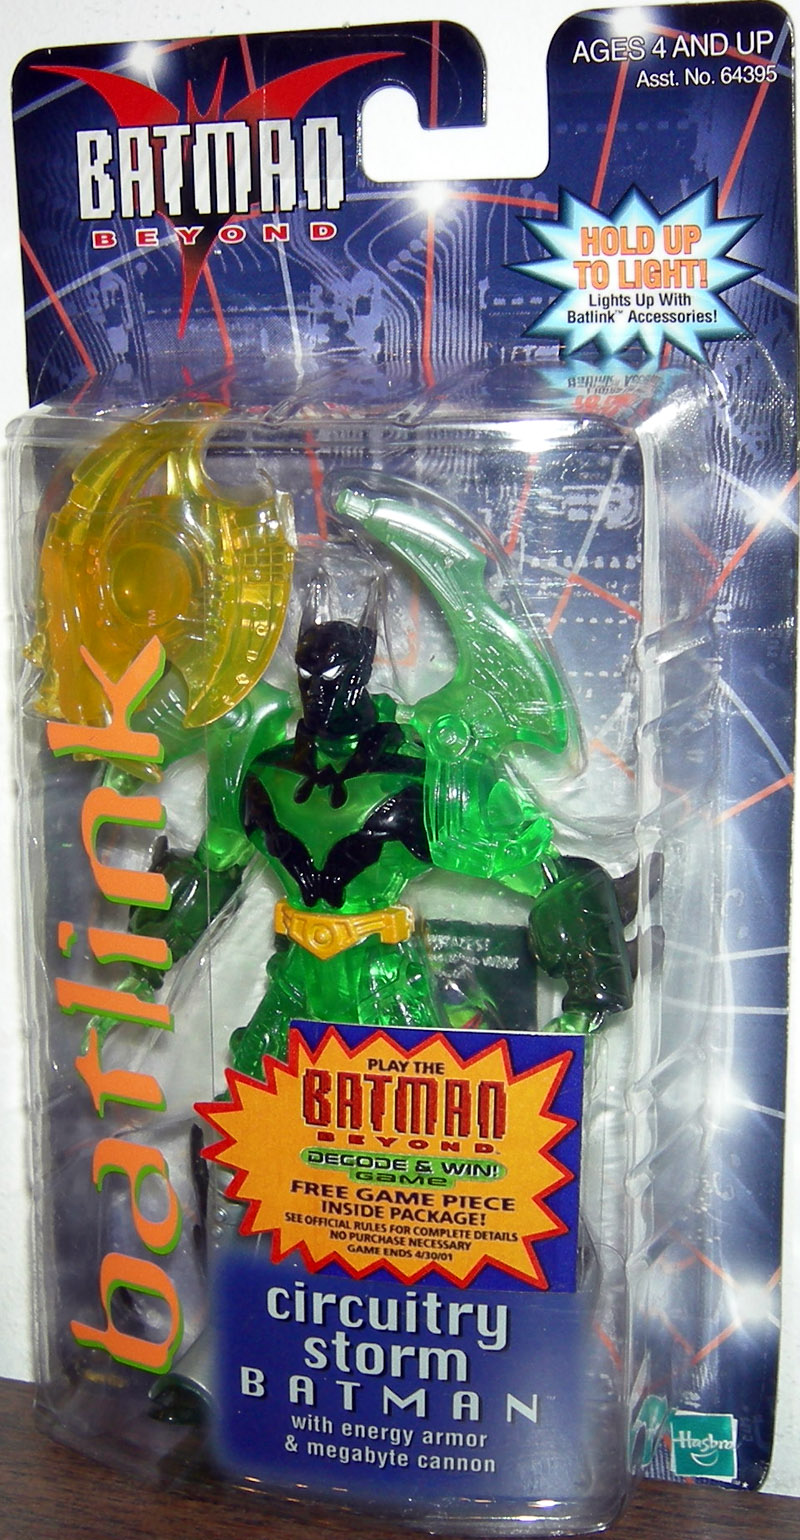 Circuitry Storm Batman (Batman Beyond, Batlink)